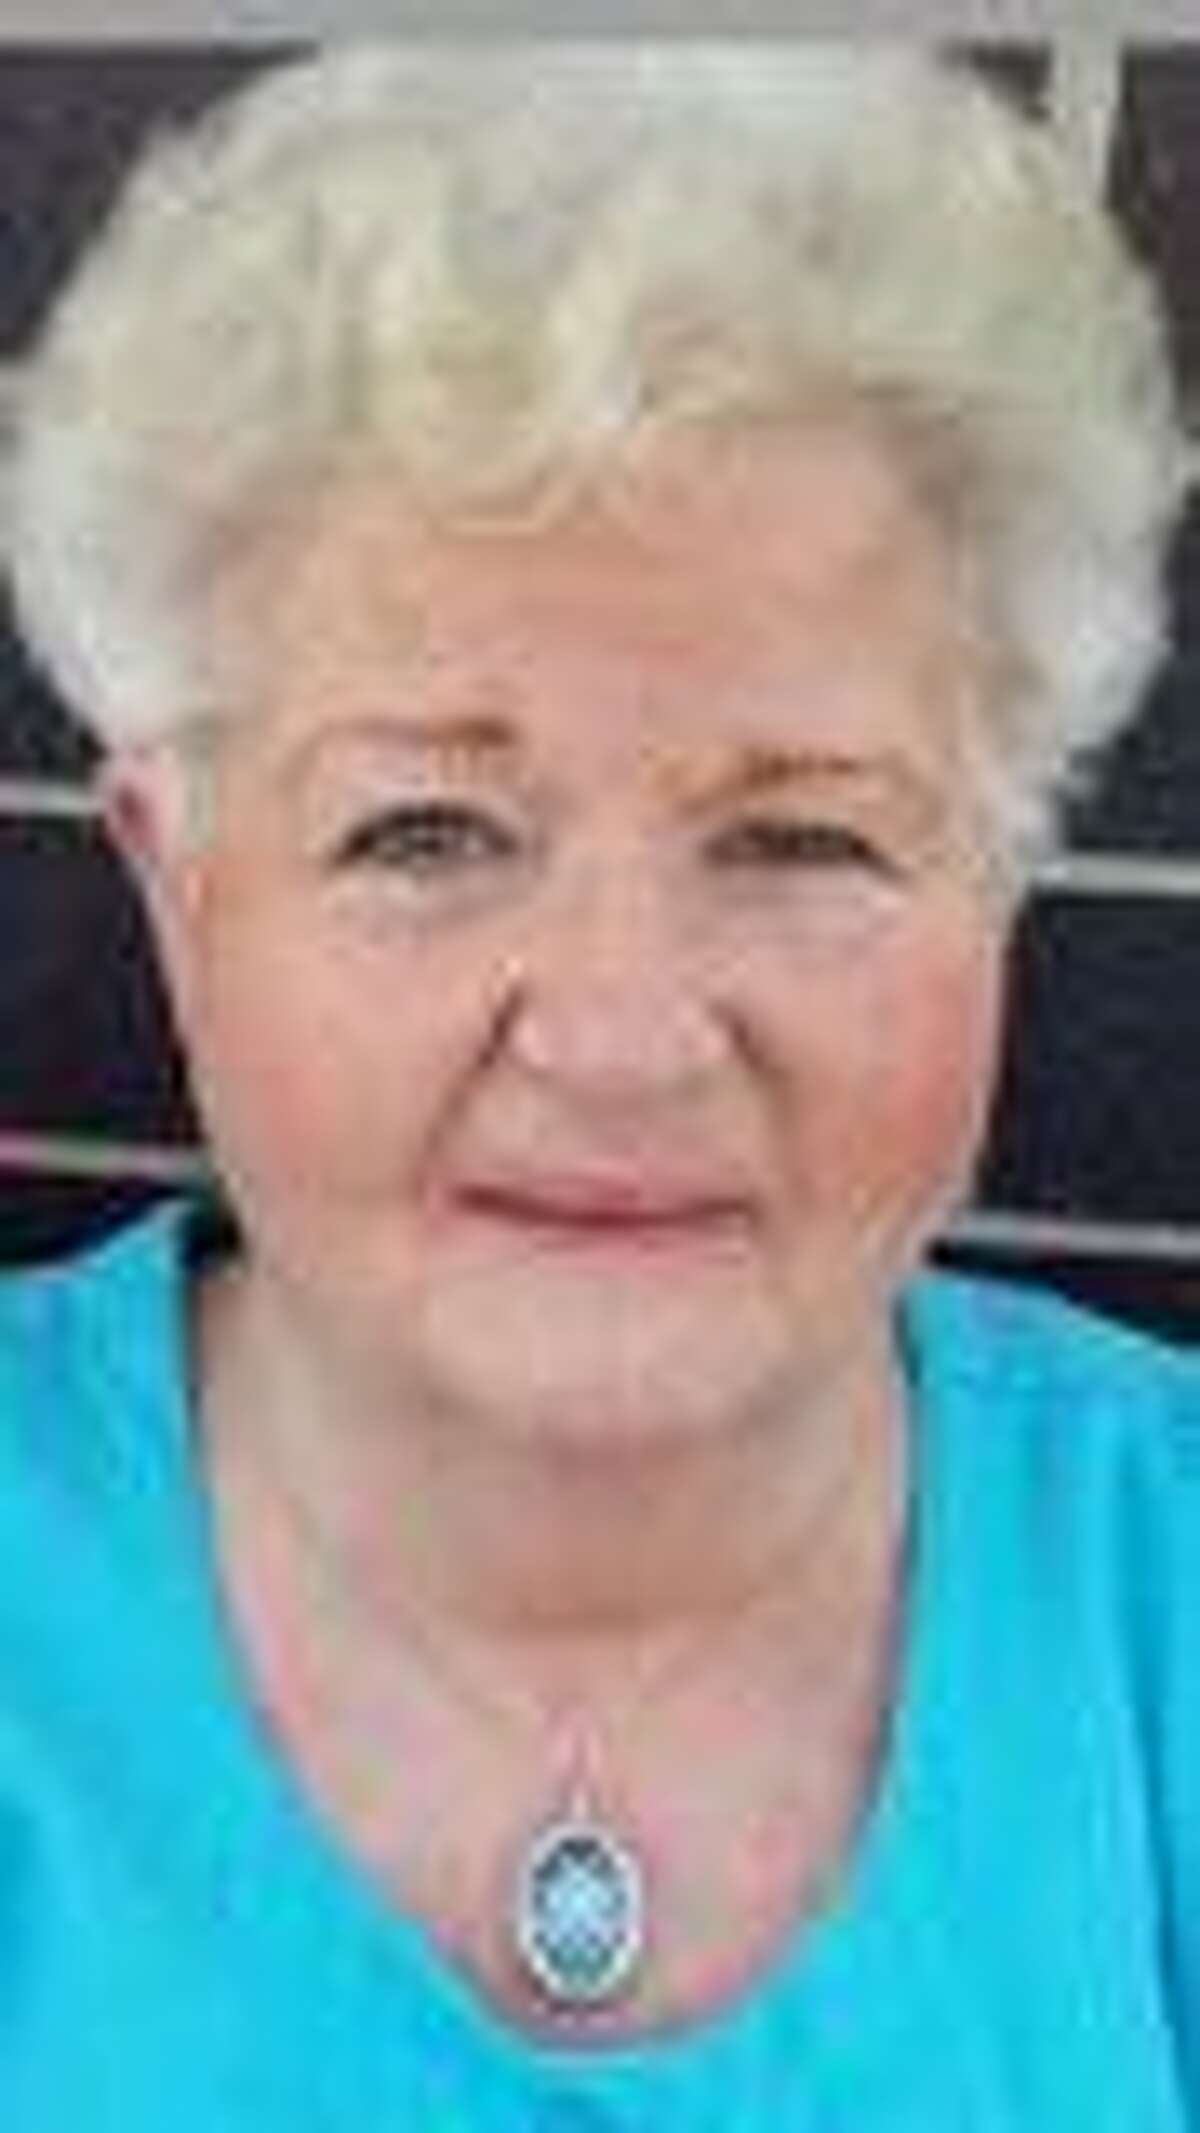 Rosie Cook, 80, was fatally stabbed outside a Walgreens on May 16, 2020, and her alleged assailant was then shot to death by a Houston police officer. Photo Courtesy of Dawn Cook, Cook's daughter-in-law.